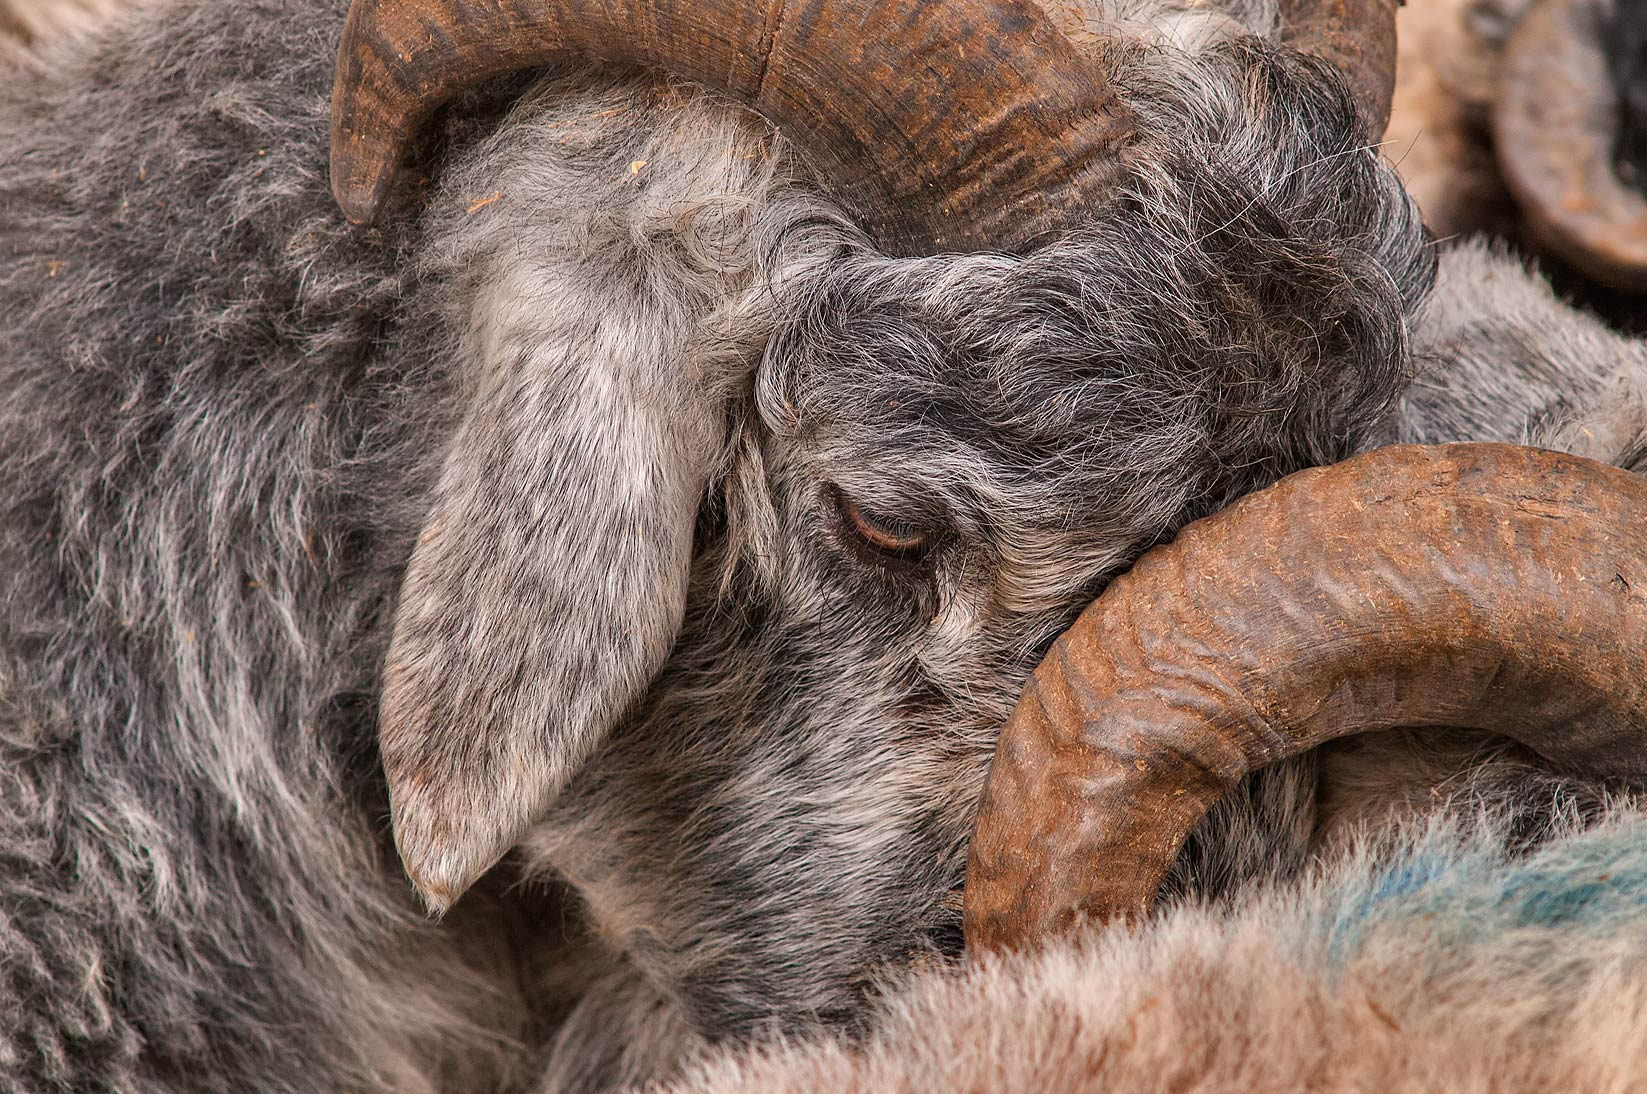 Grey sleeping sheep in livestock market, Abu Hamour area. Doha, Qatar